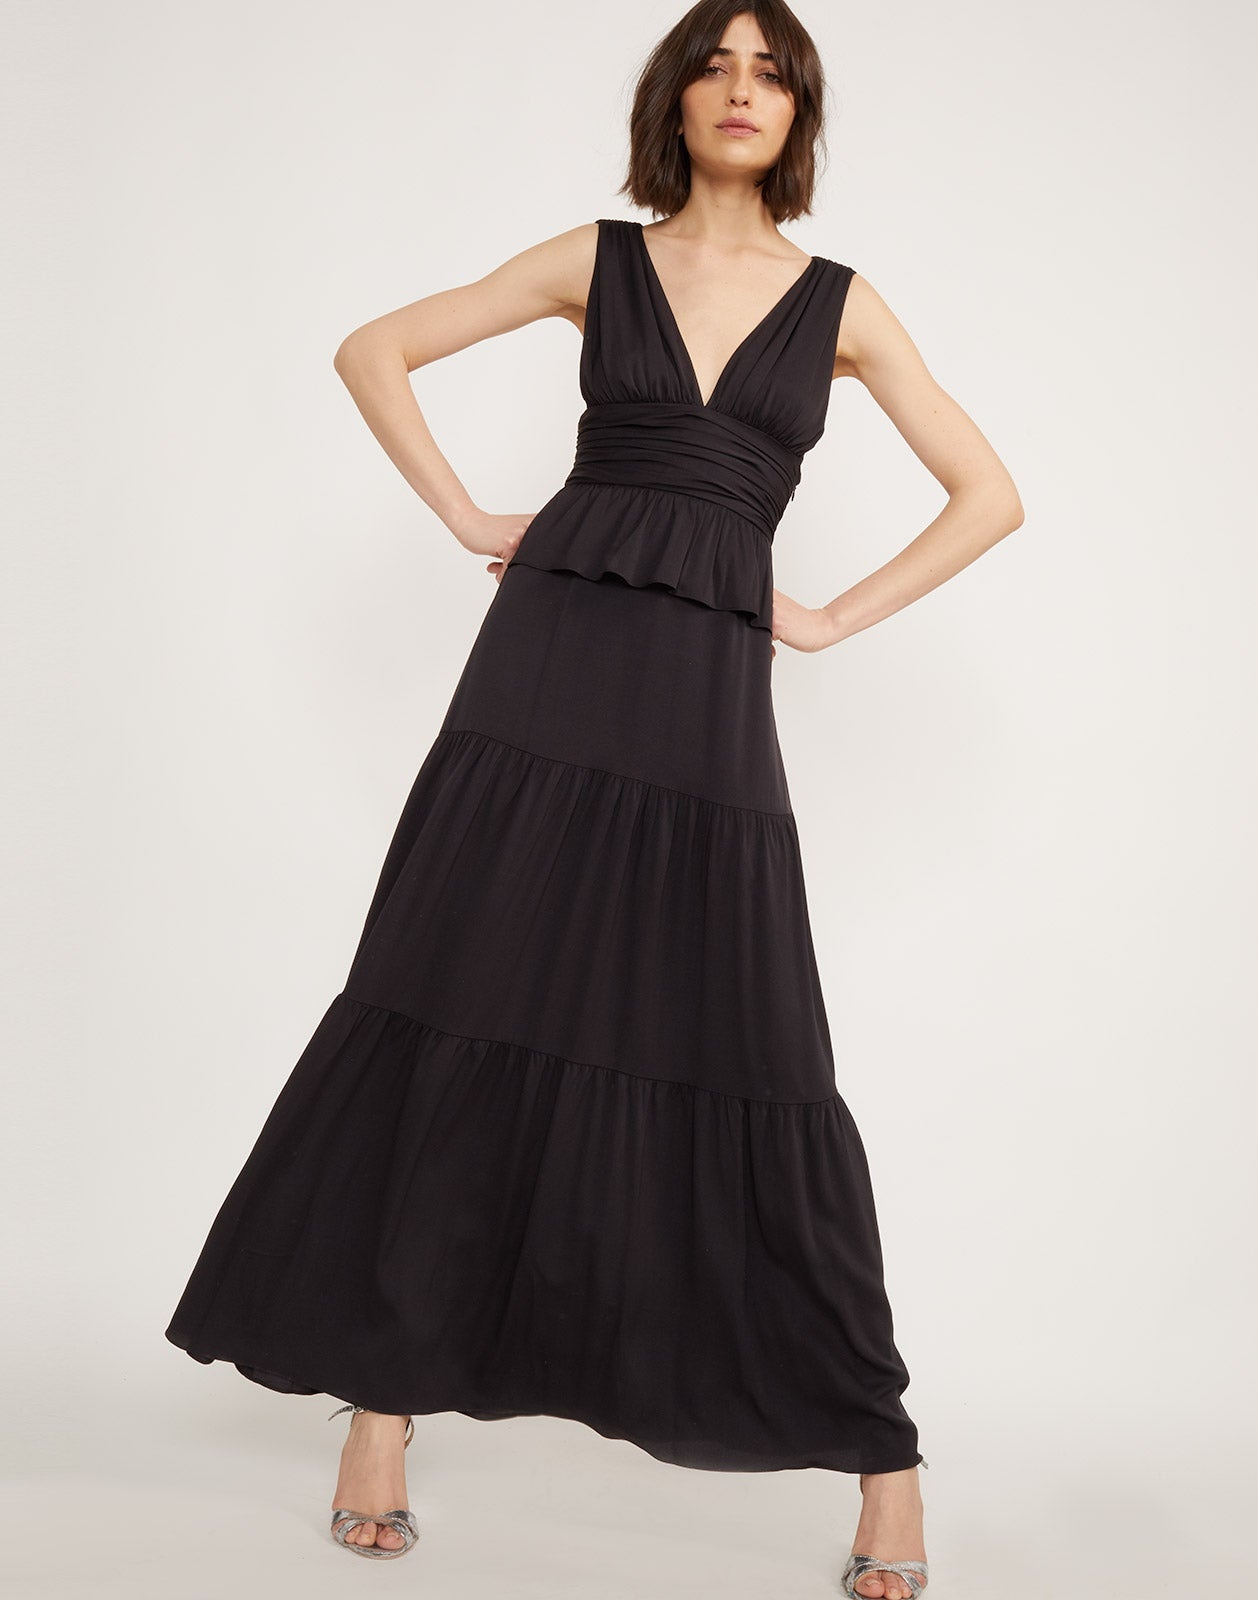 Full view of model wearing Zadie tiered maxi dress in black.